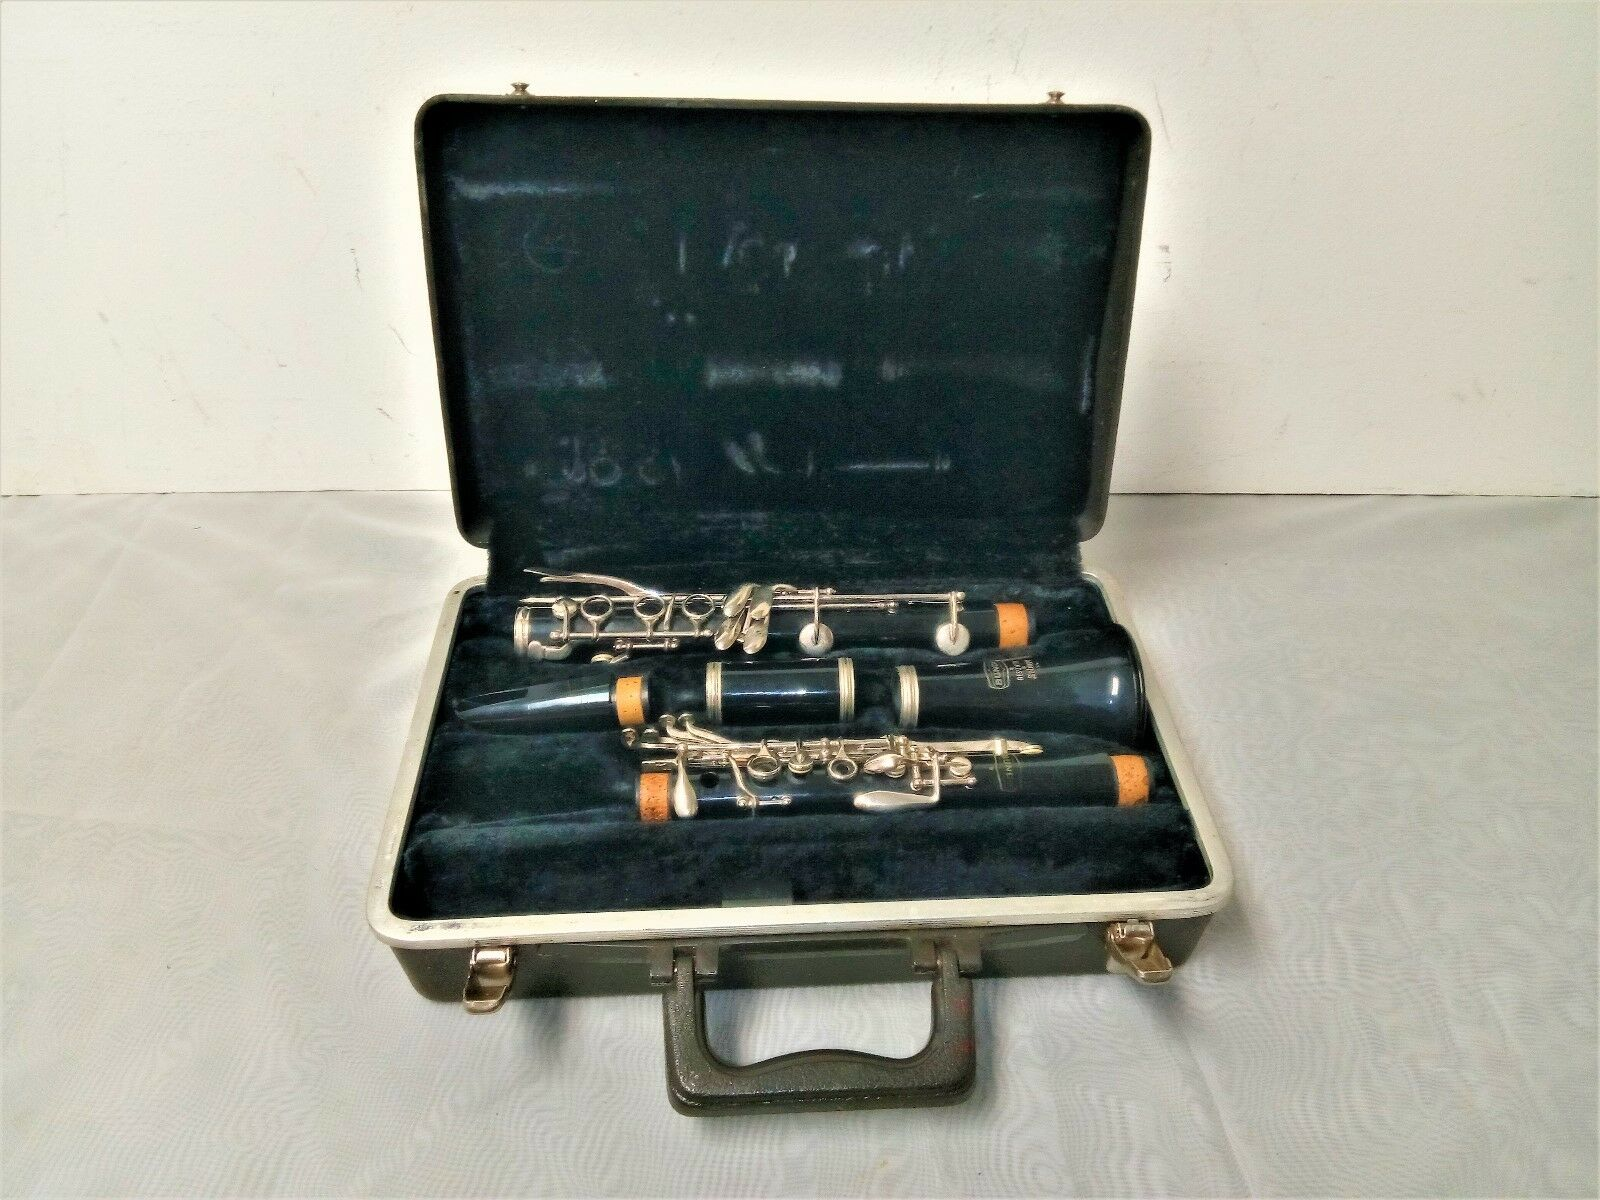 Bundy Resonite Clarinet Student Model with Hard Case - Ready to Play